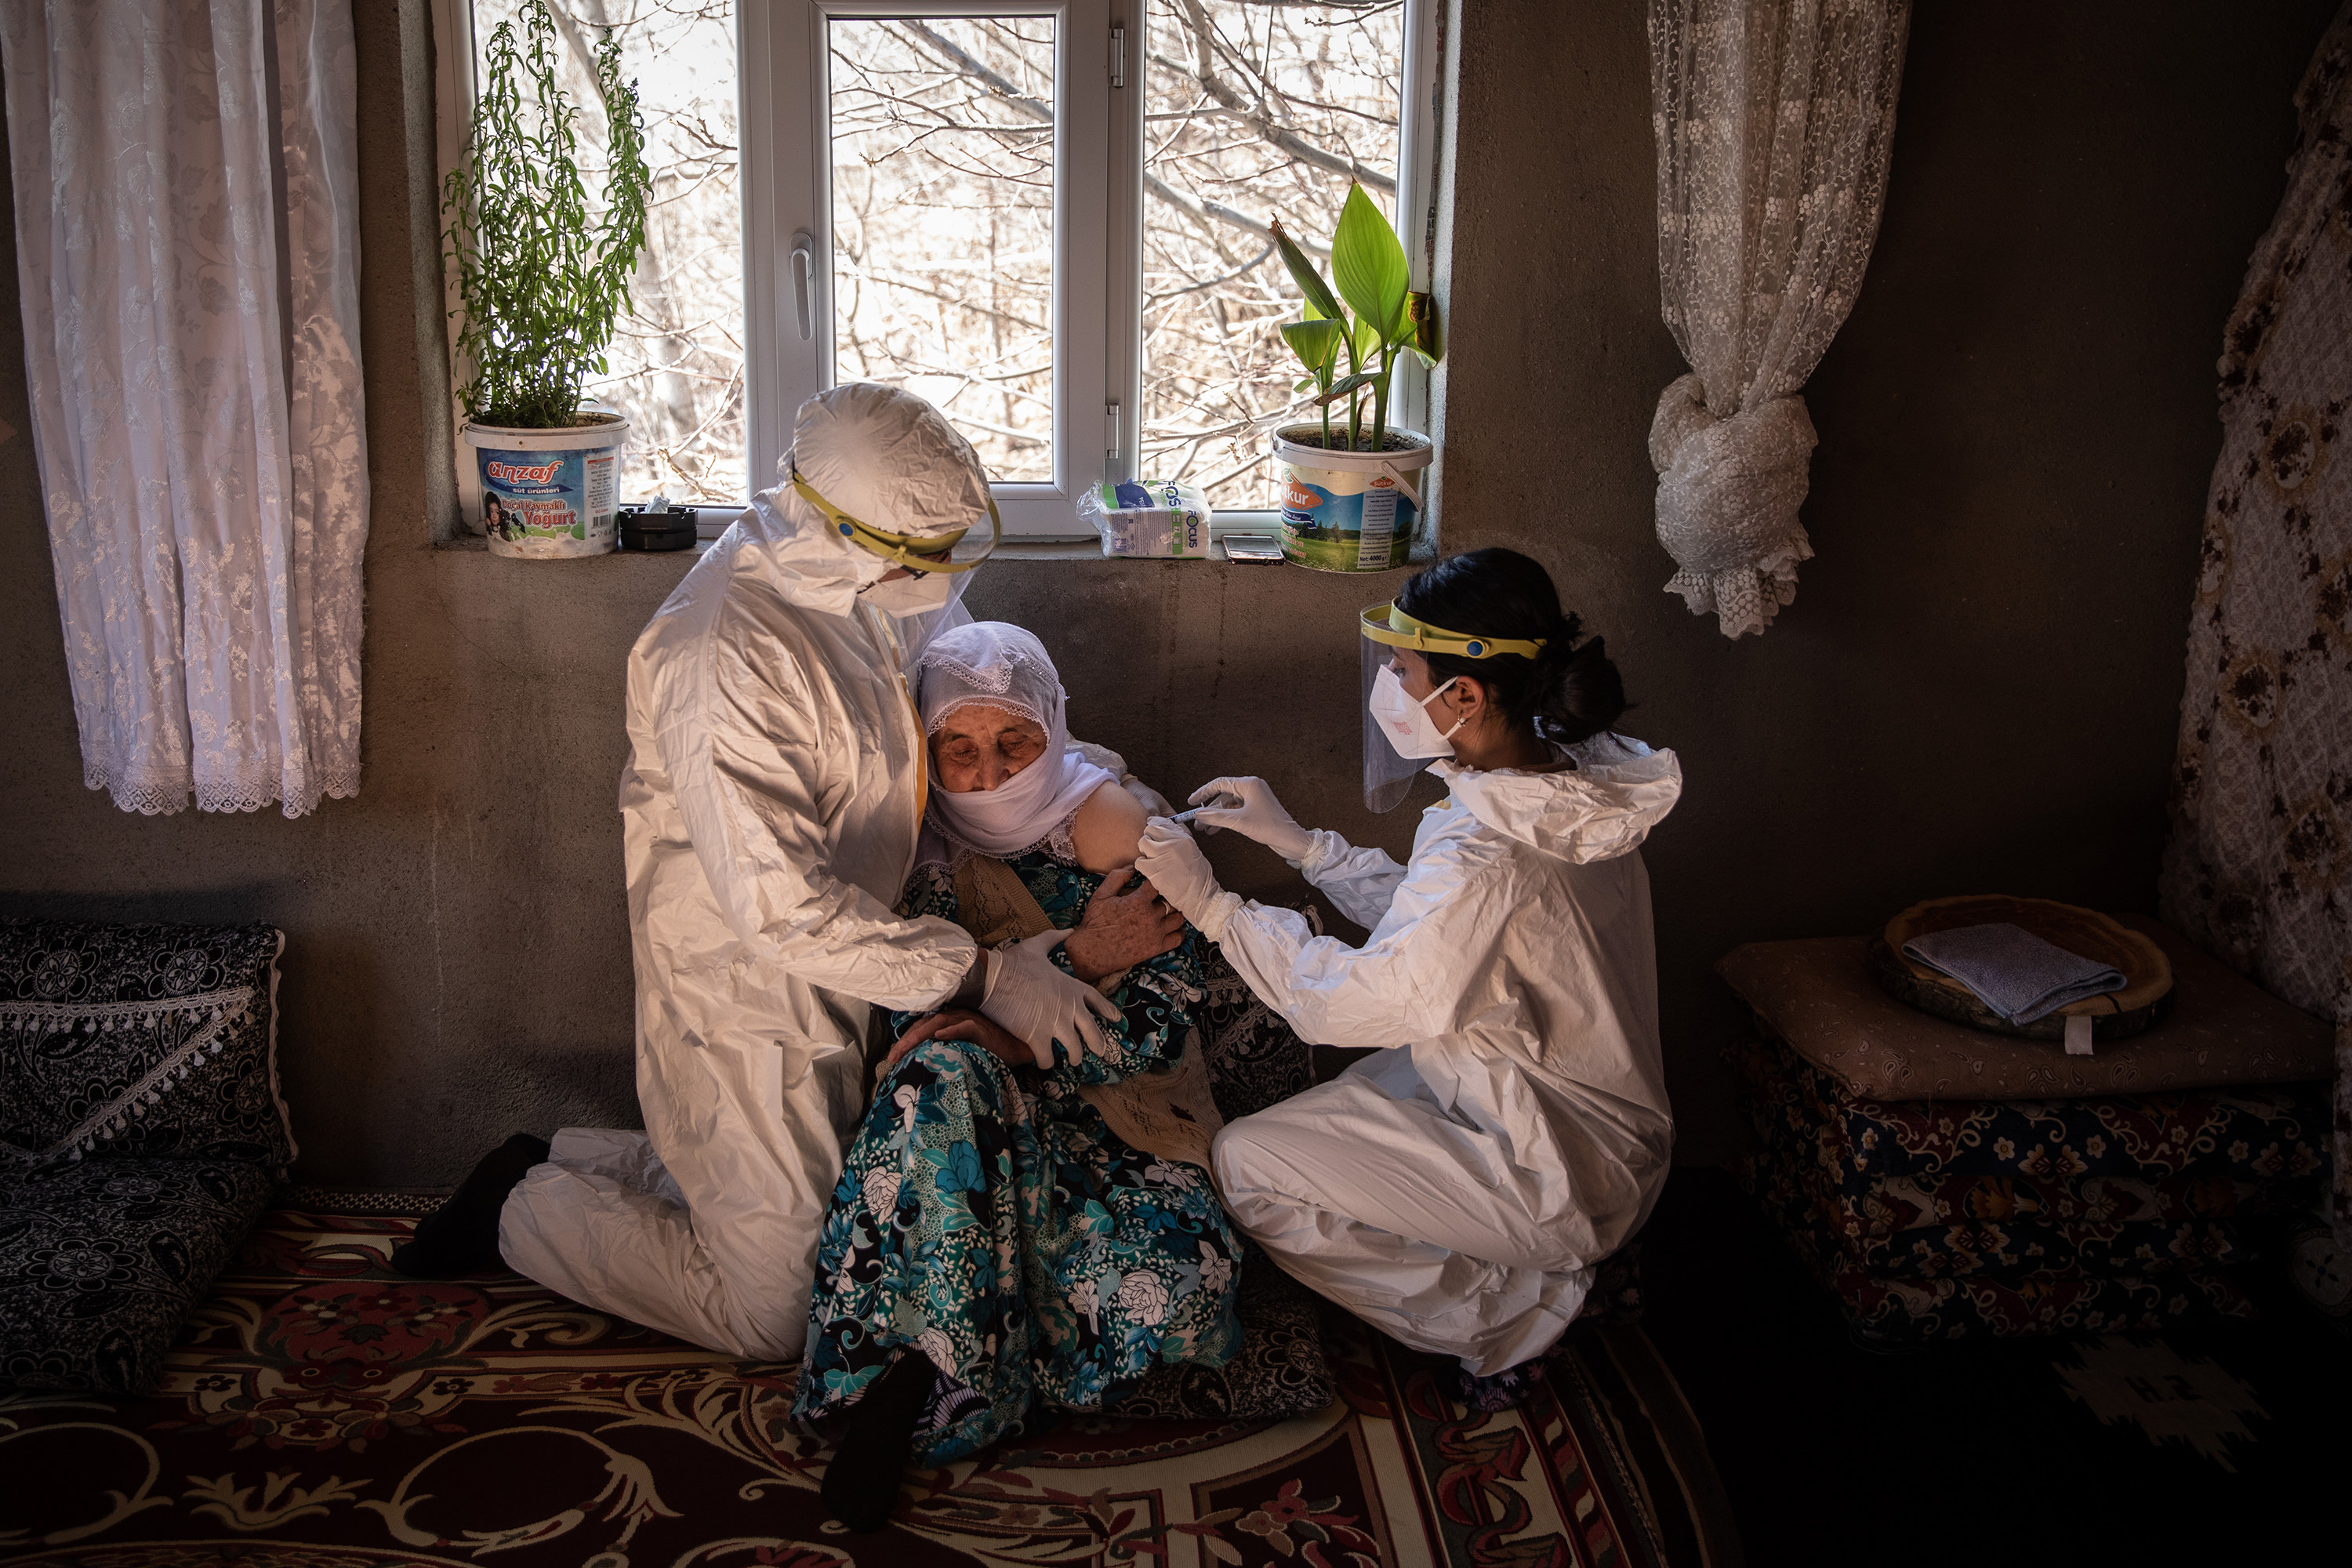 An older Turkish woman sits on the floor of her home as two nurses in haz mat gear administer the vaccine